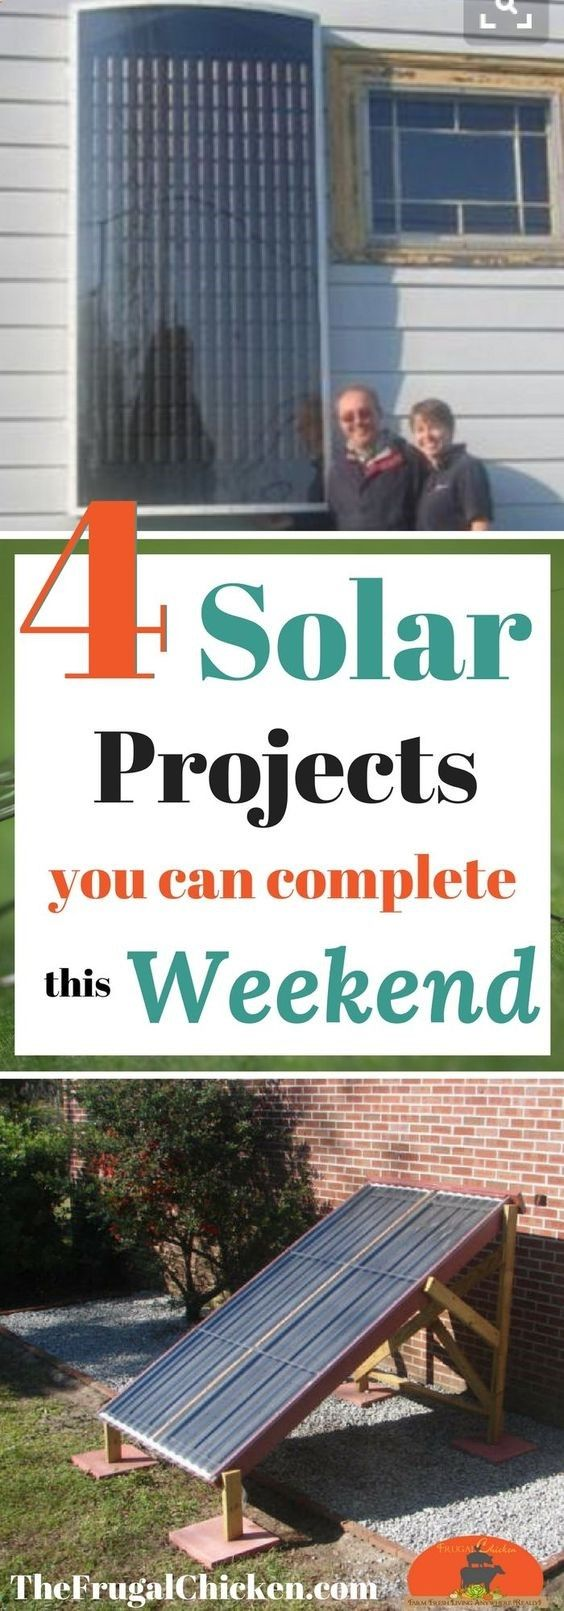 Getting excited about all the buzz about solar power? Heres 4 projects you can complete this weekend - you probably have most of these materials laying around!